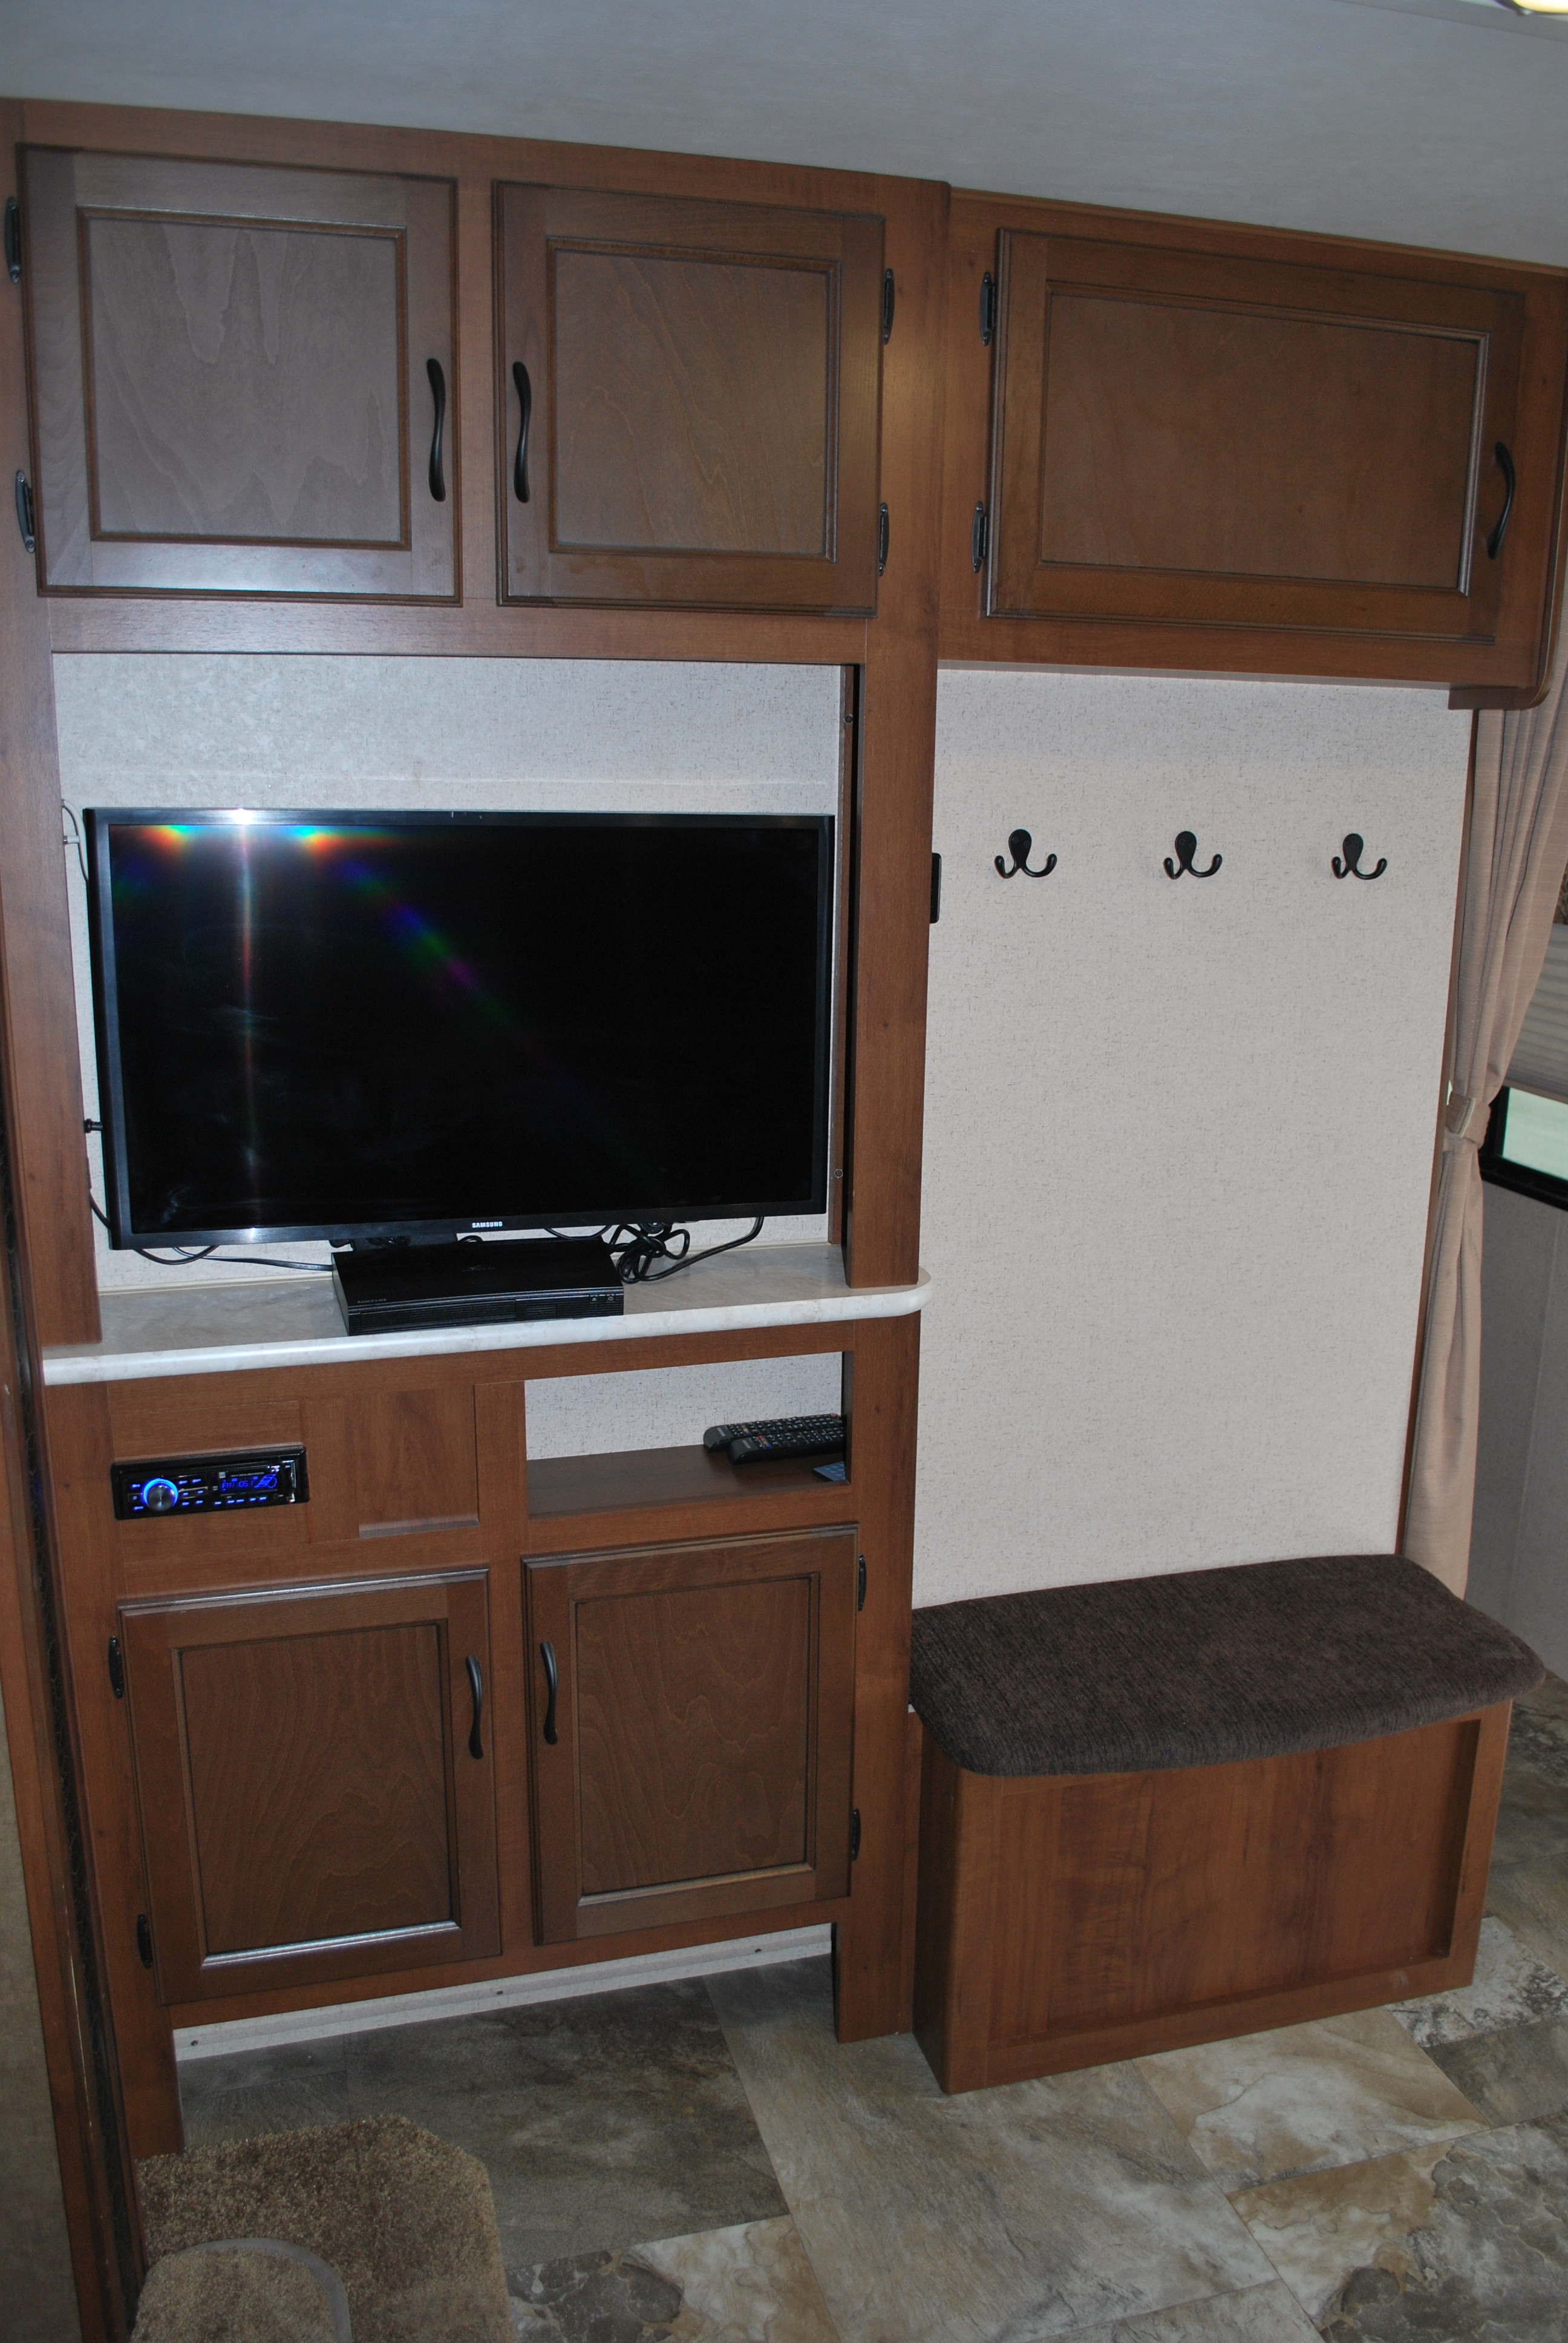 on countertops con countertop tact cover re newlywed and contact a dime covering redo old with papers temporary to paper